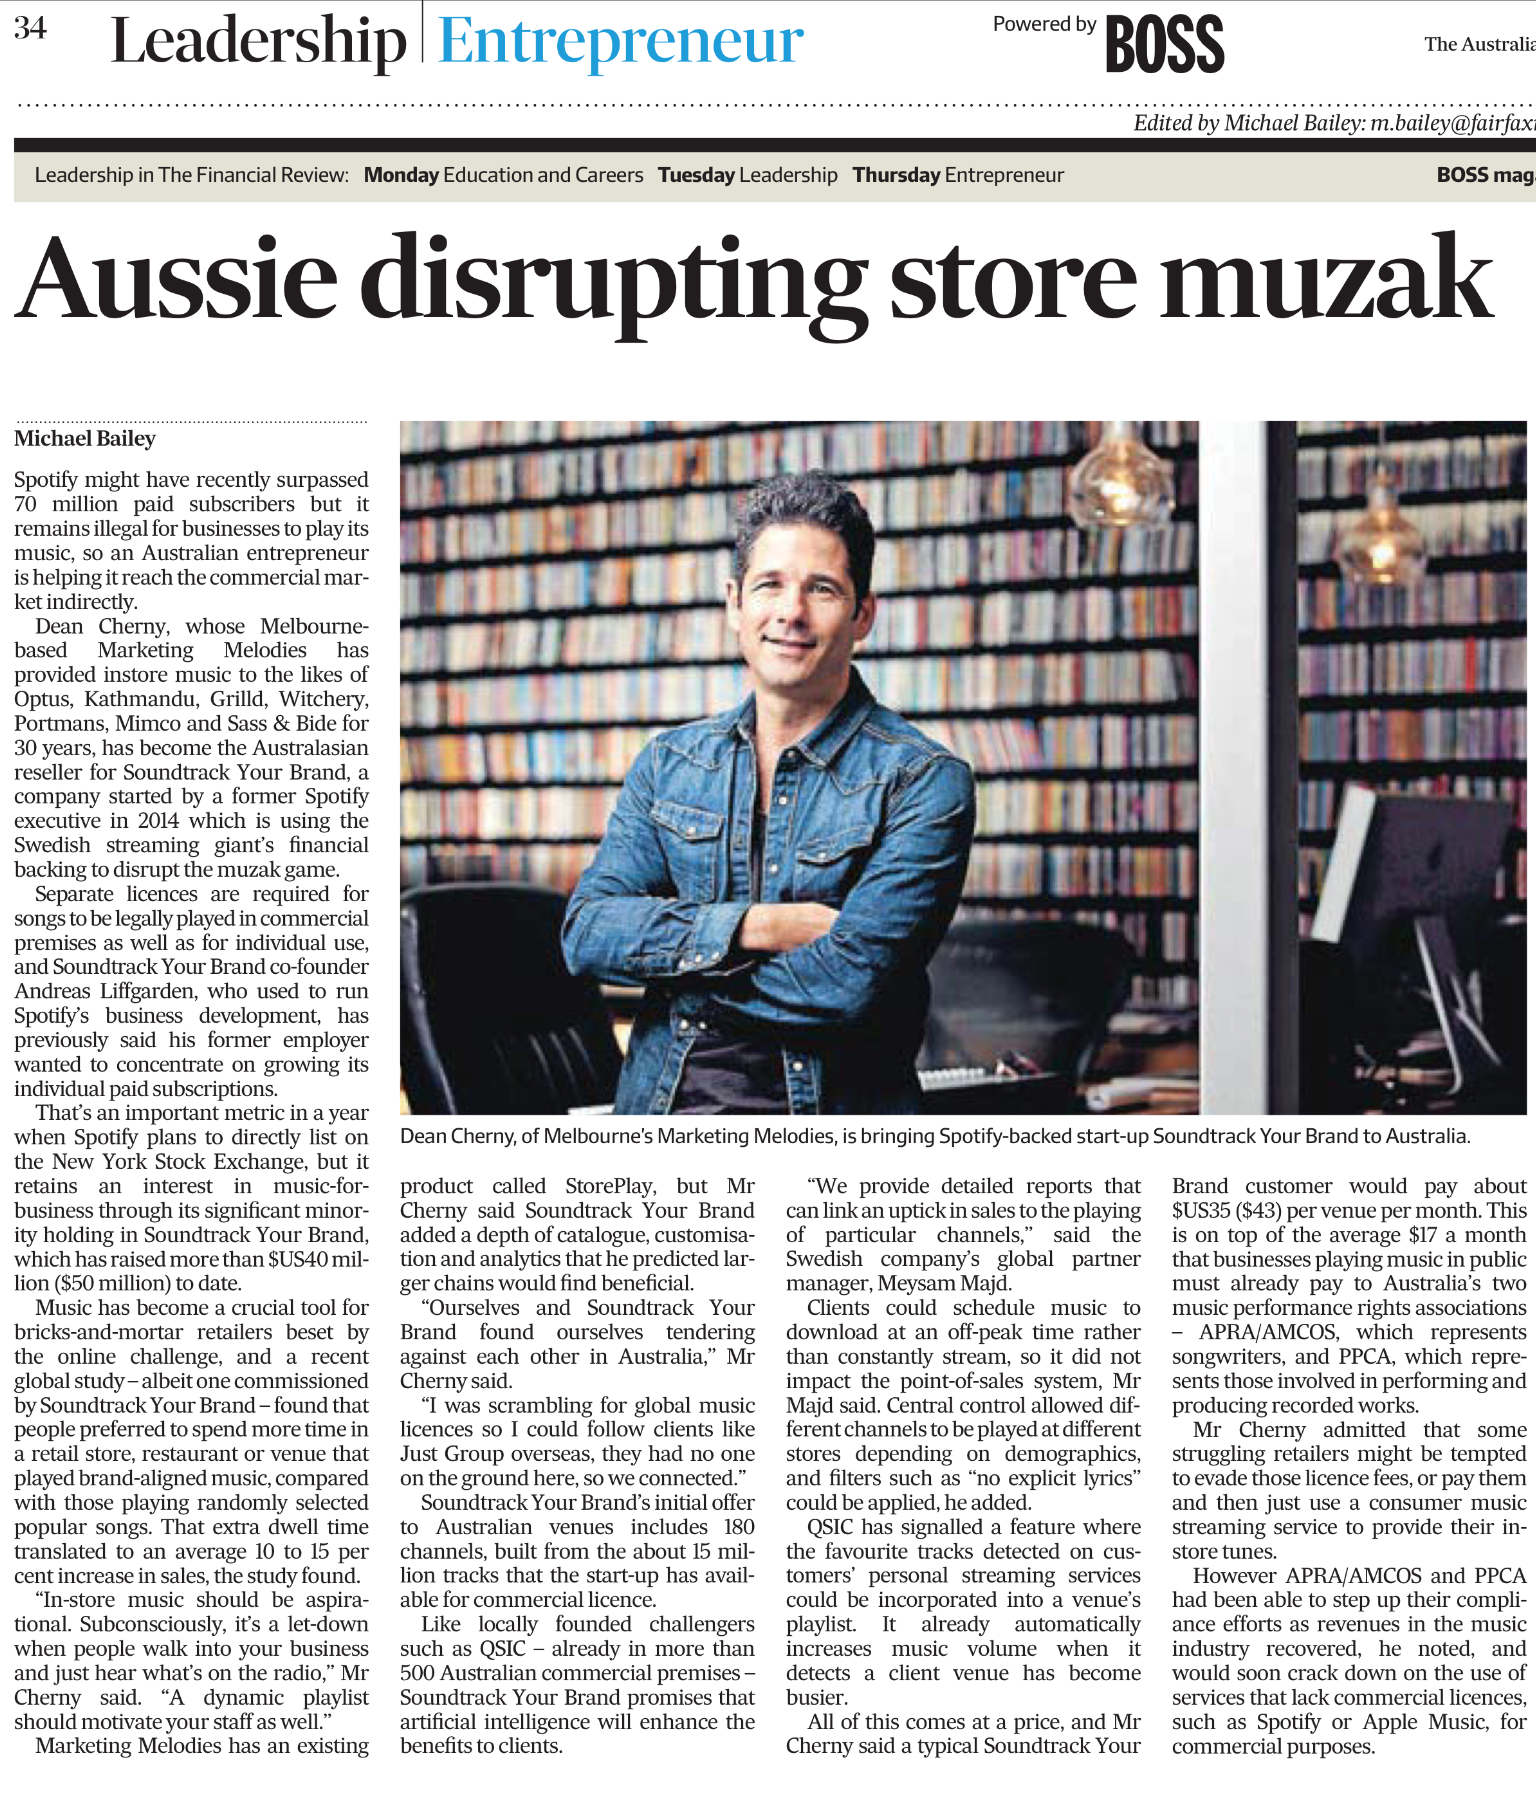 Financial Review December 2017: Melbourne's Marketing Melodies is helping Spotify investee to disrupt shopping muzak